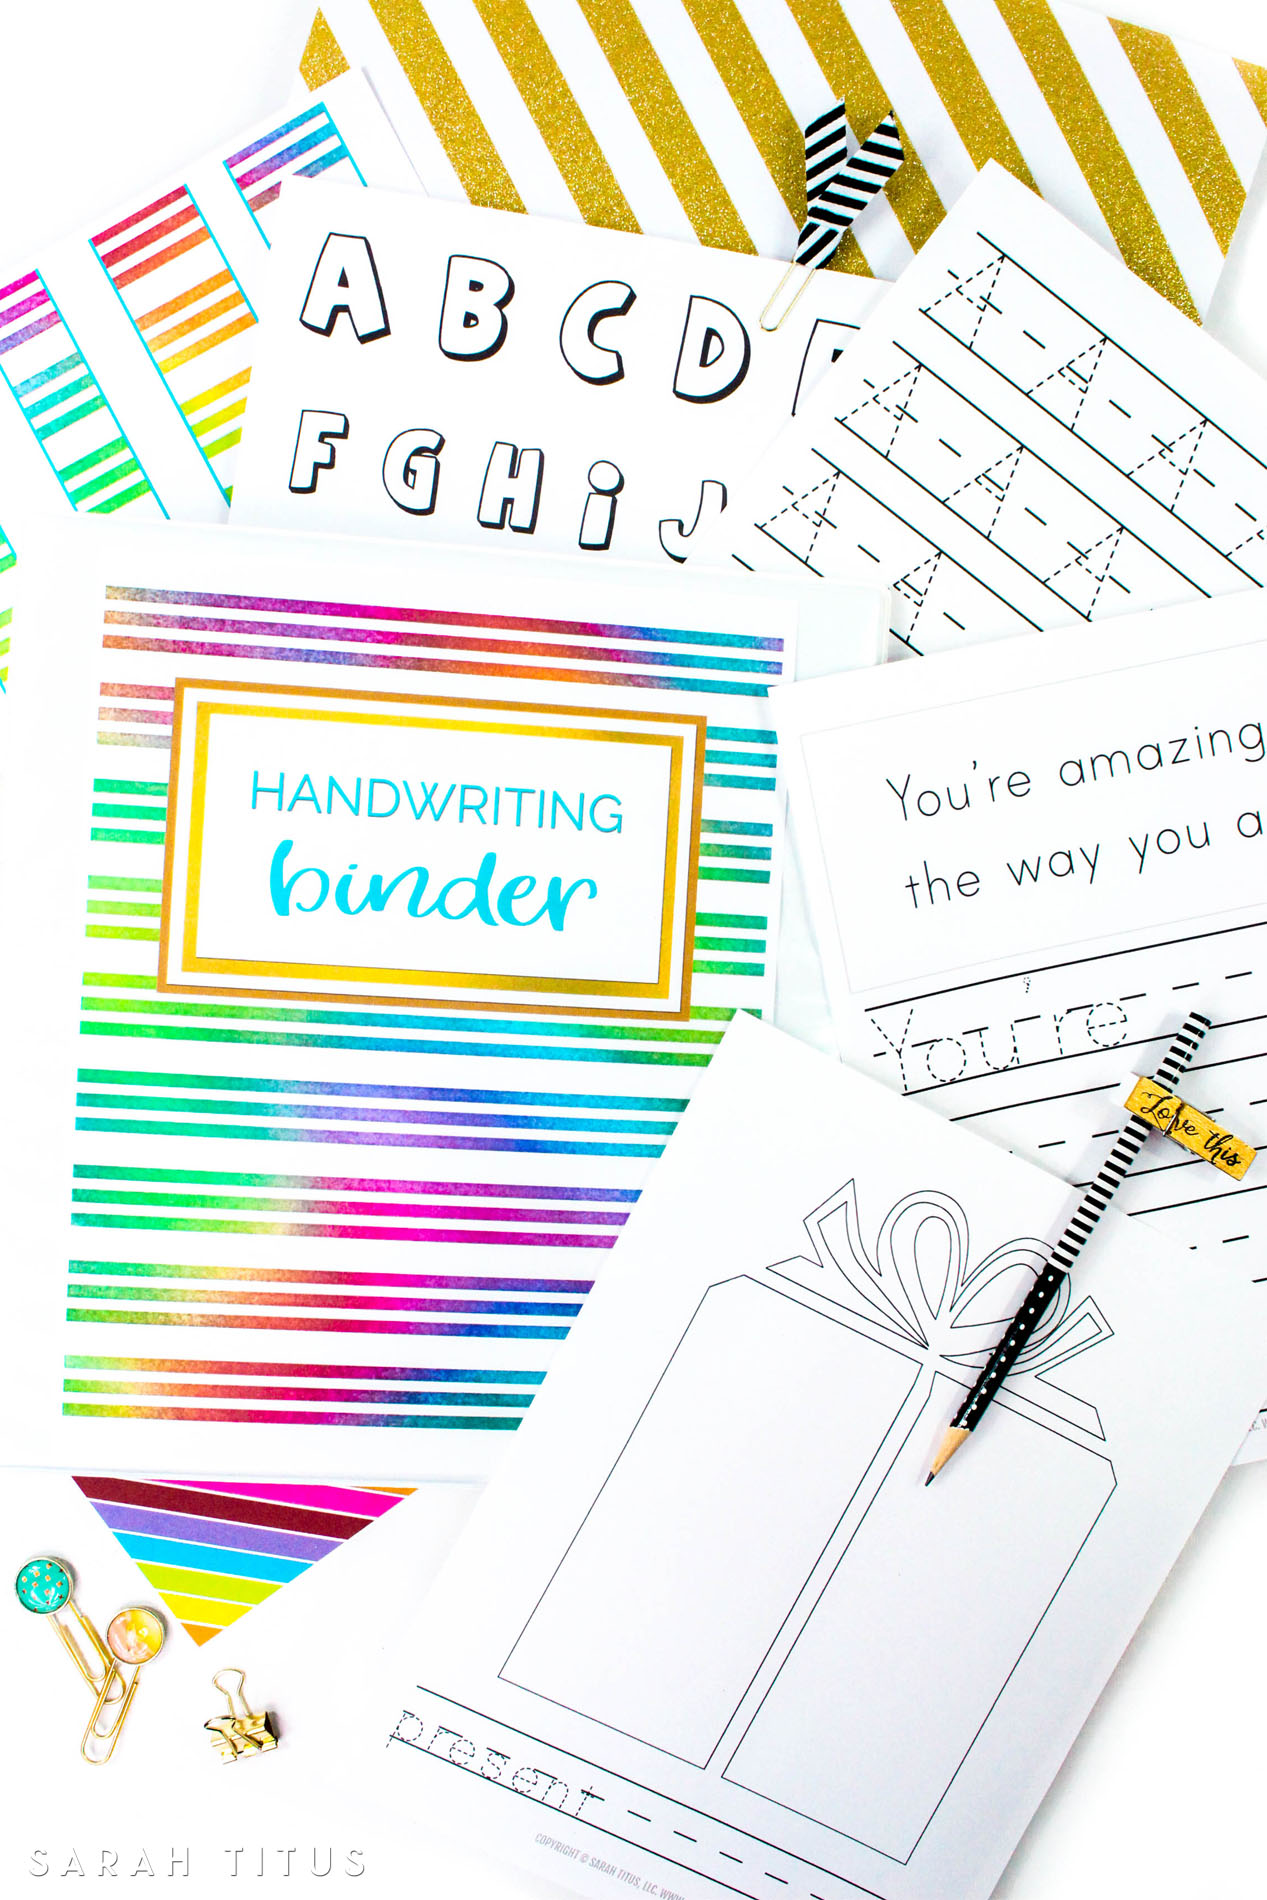 60+ page Handwriting Binder printables set includes, capital letters, tracing sheets, coloring pages, encouraging copy sentences...and more!